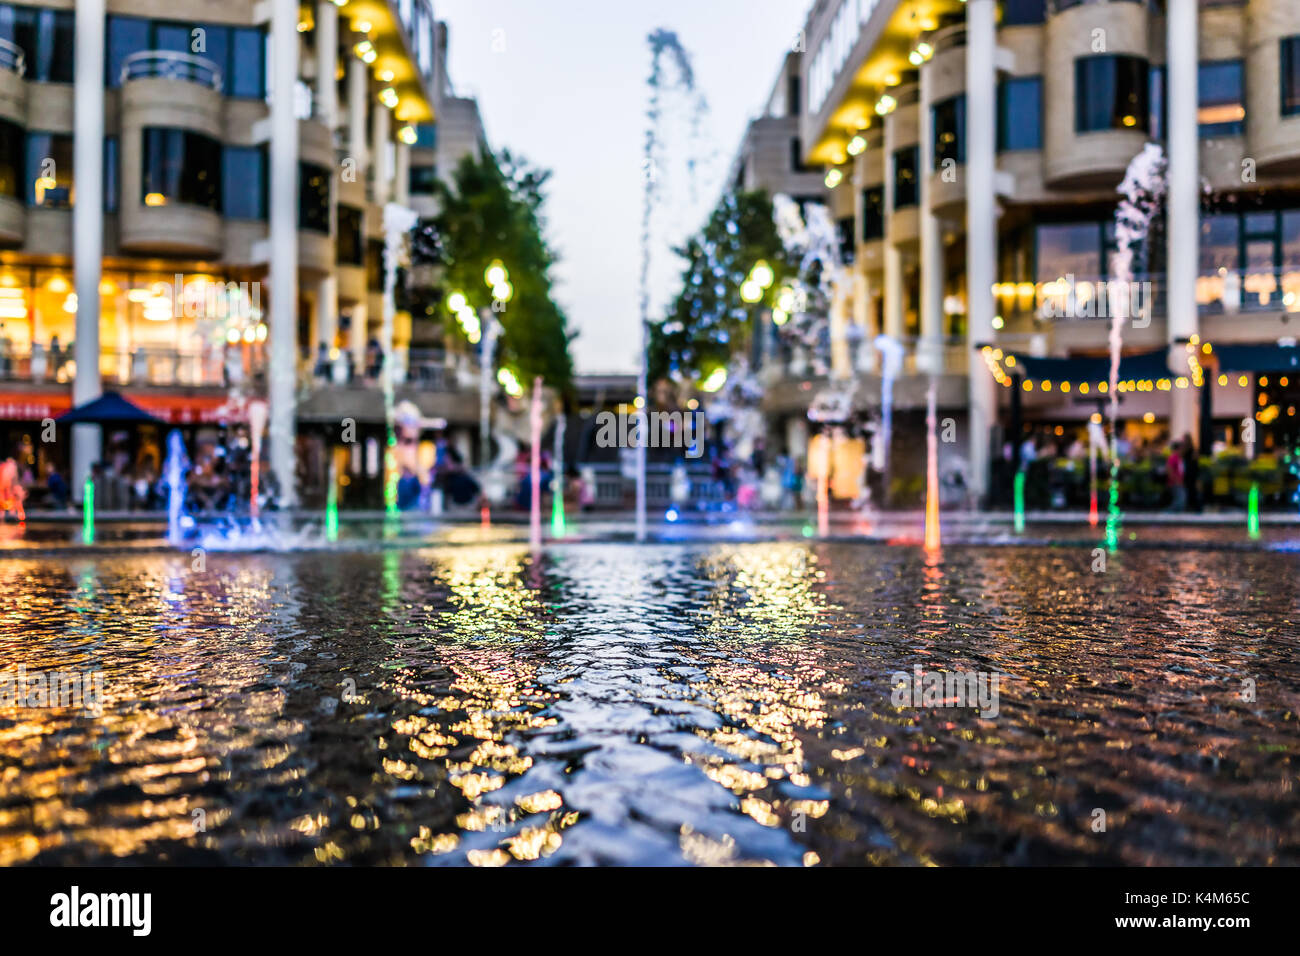 Closeup of colorful fountain at night in Georgetown Harbor with restaurants - Stock Image